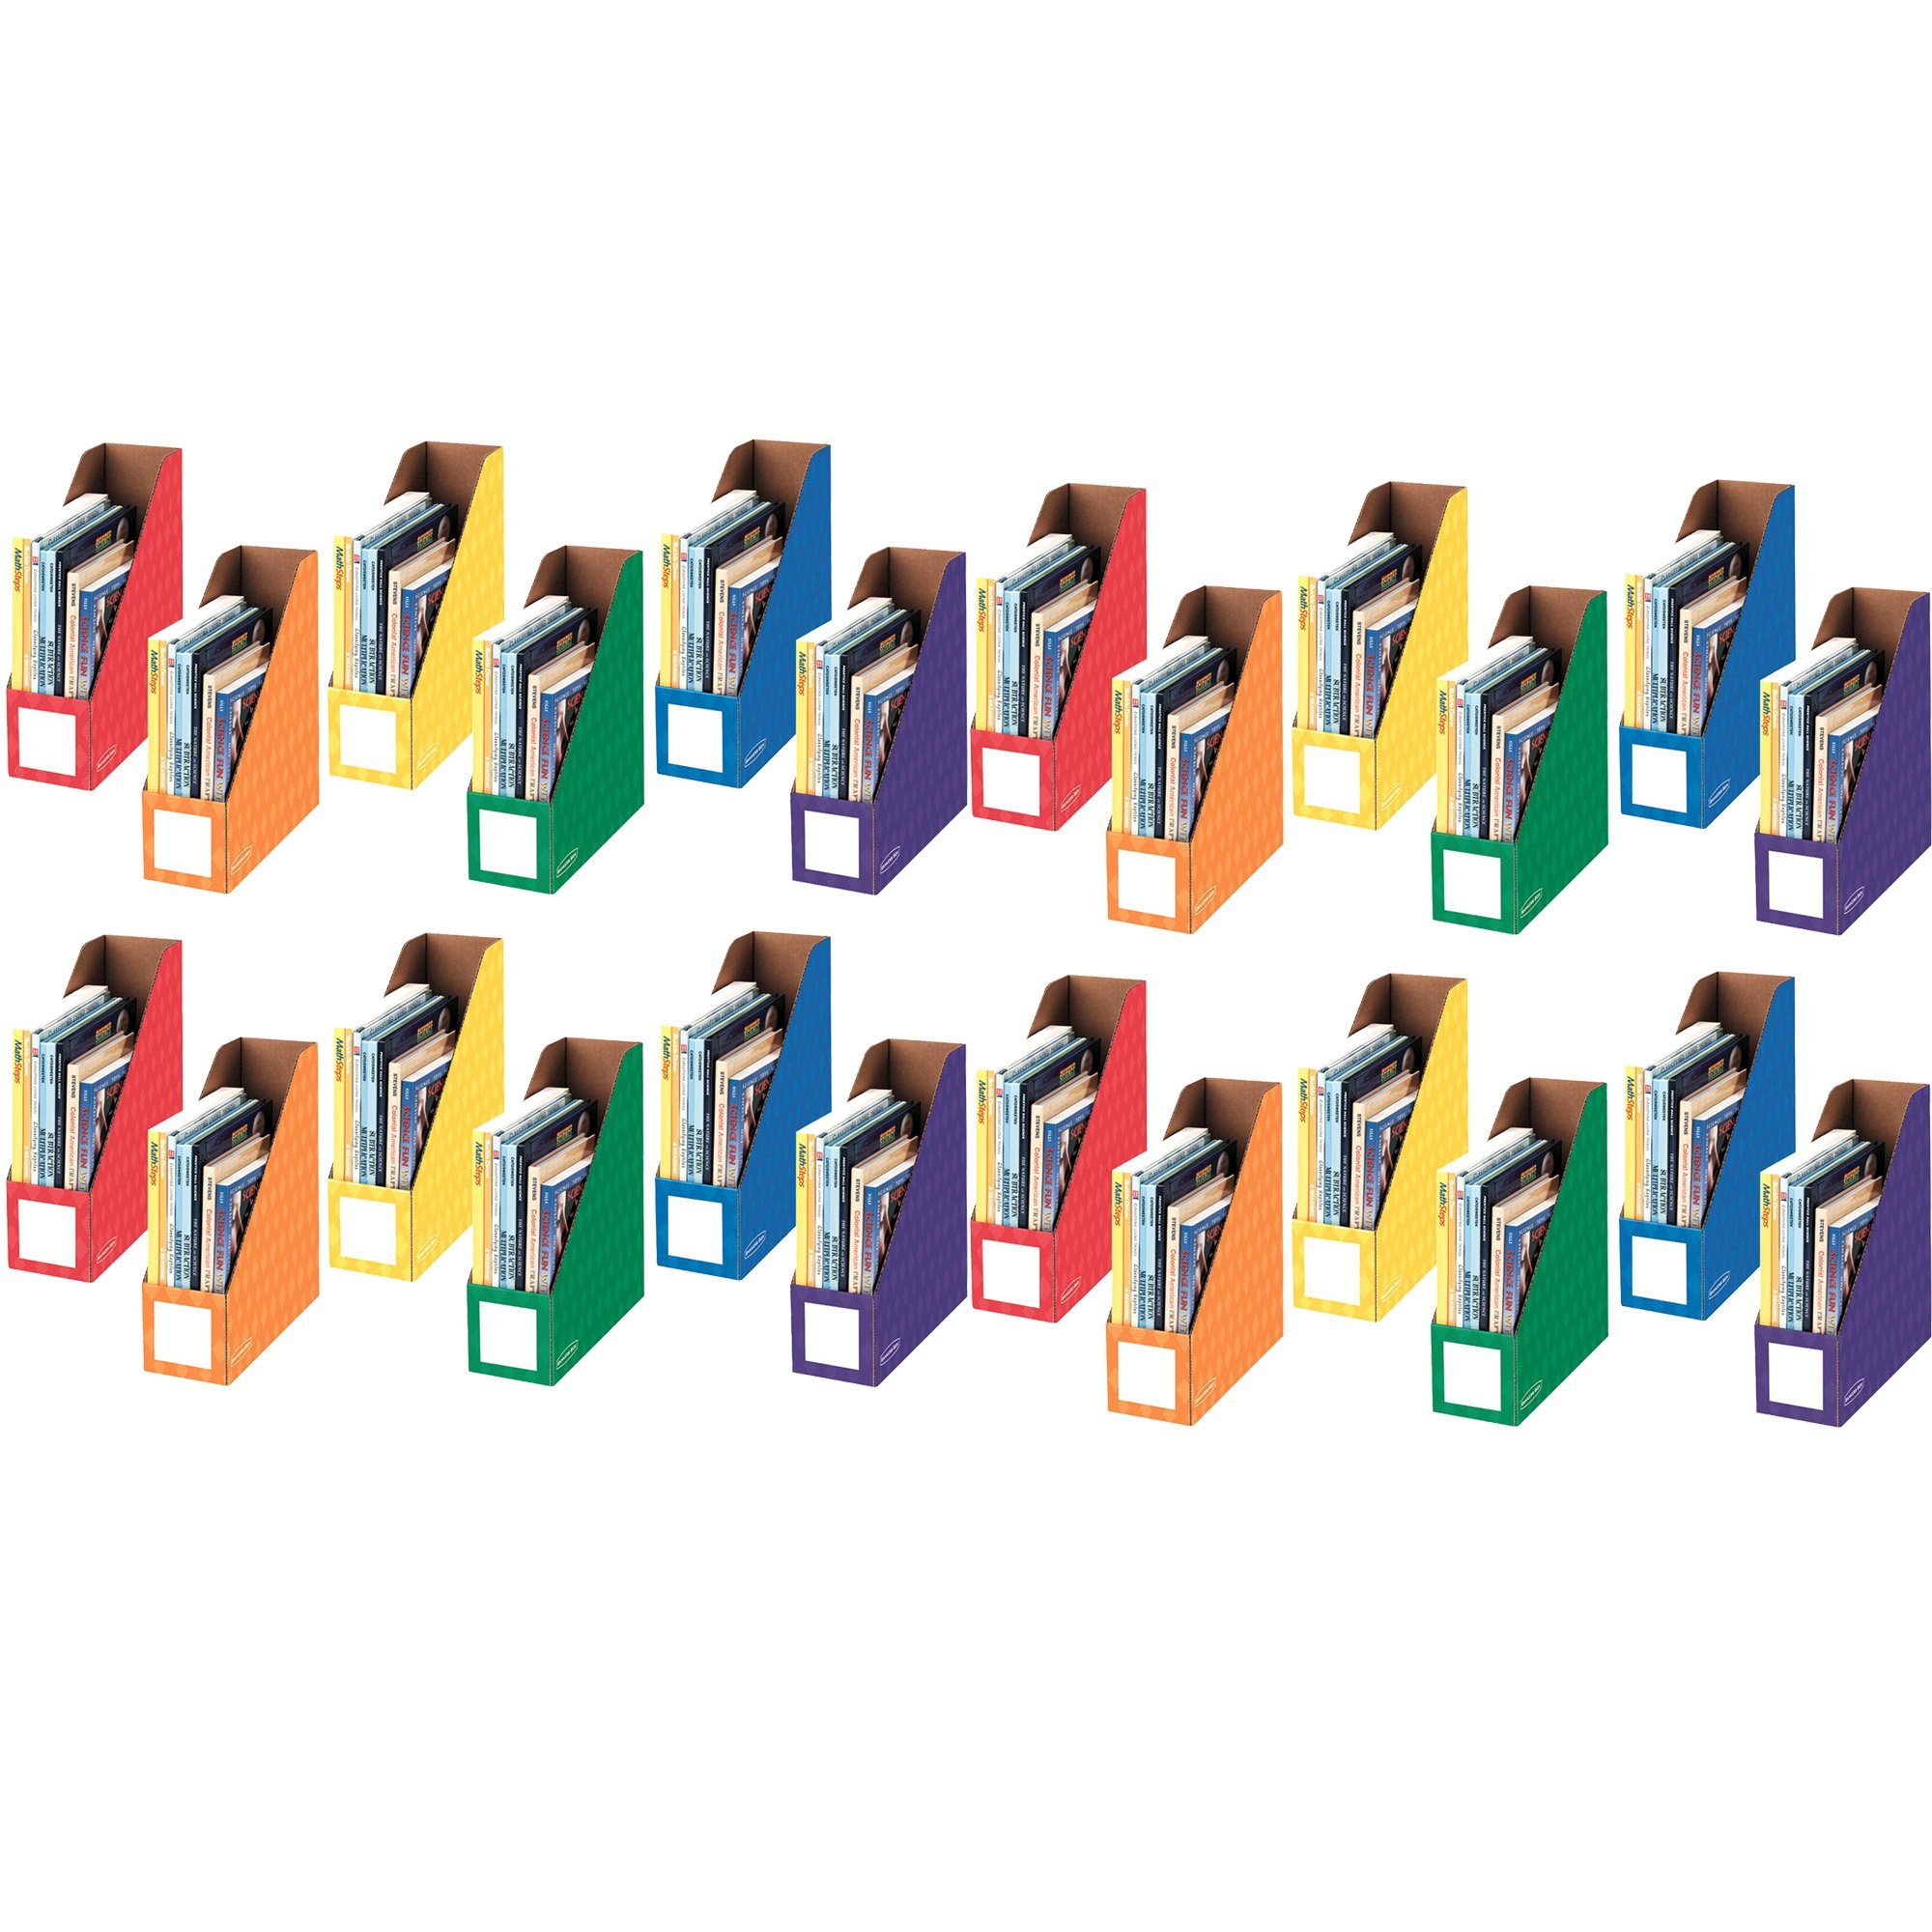 Bankers Box Classroom Magazine File Organizers, 4-Inch, Assorted Colors, 6 Pack (3381901), 4-Pack